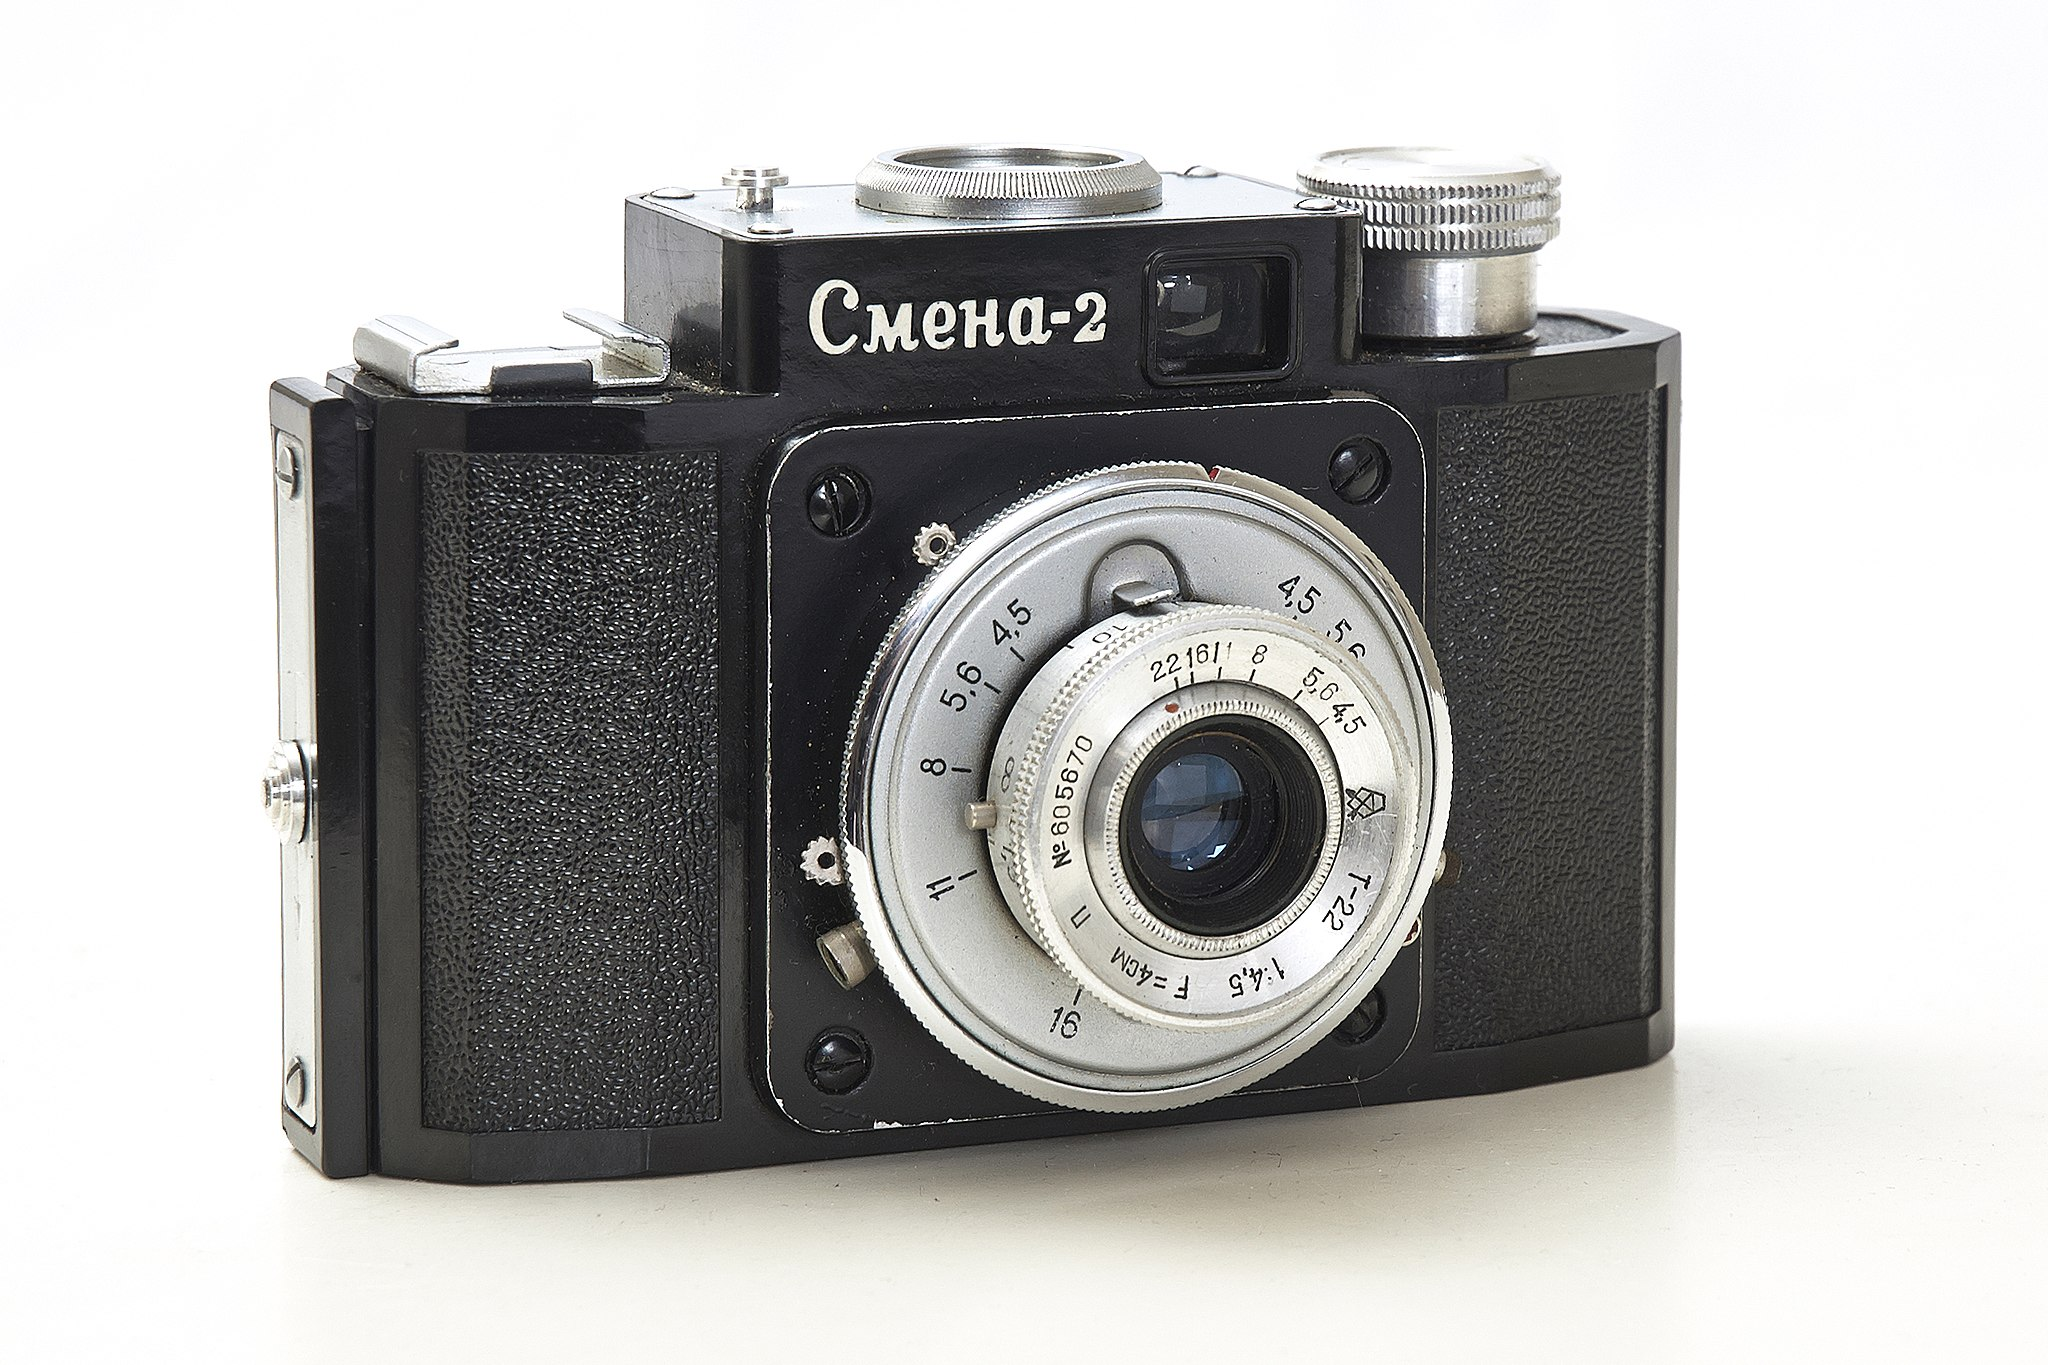 Smena-2 camera (Pic: Dmitry Makeev/Wikimedia Commons)